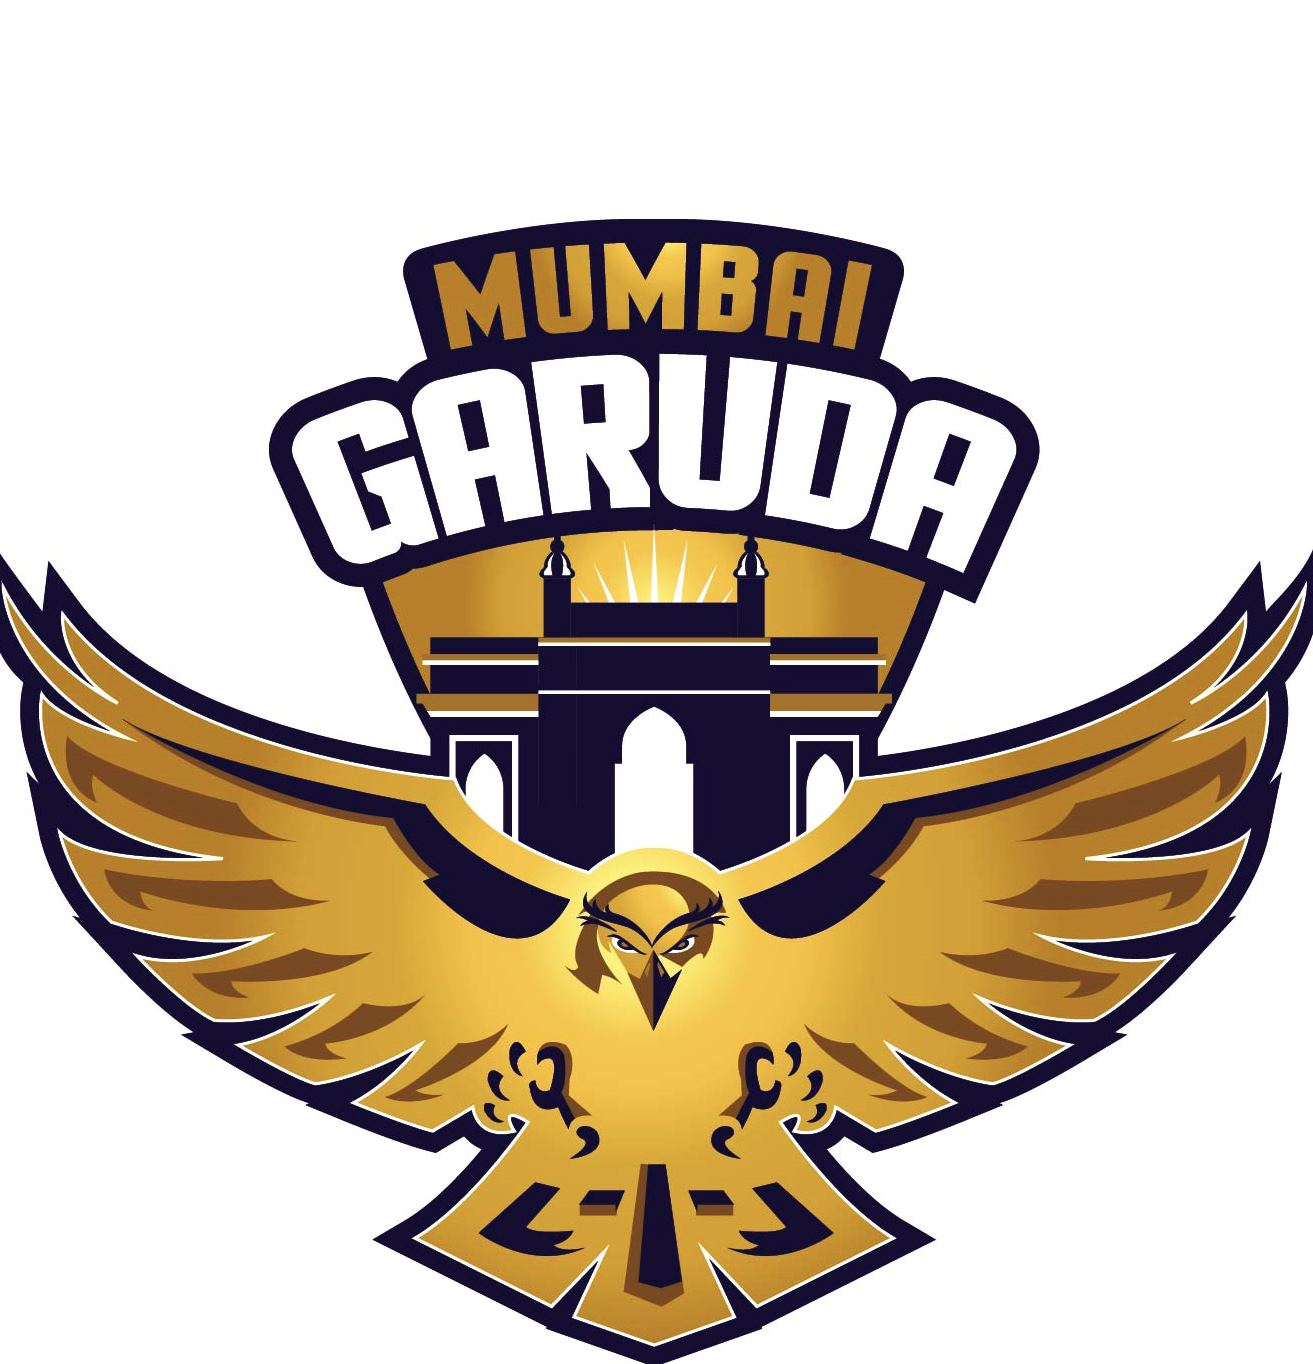 Mumbai Garuda To Represent City In Inaugural Triple World Champion Wing Pilot